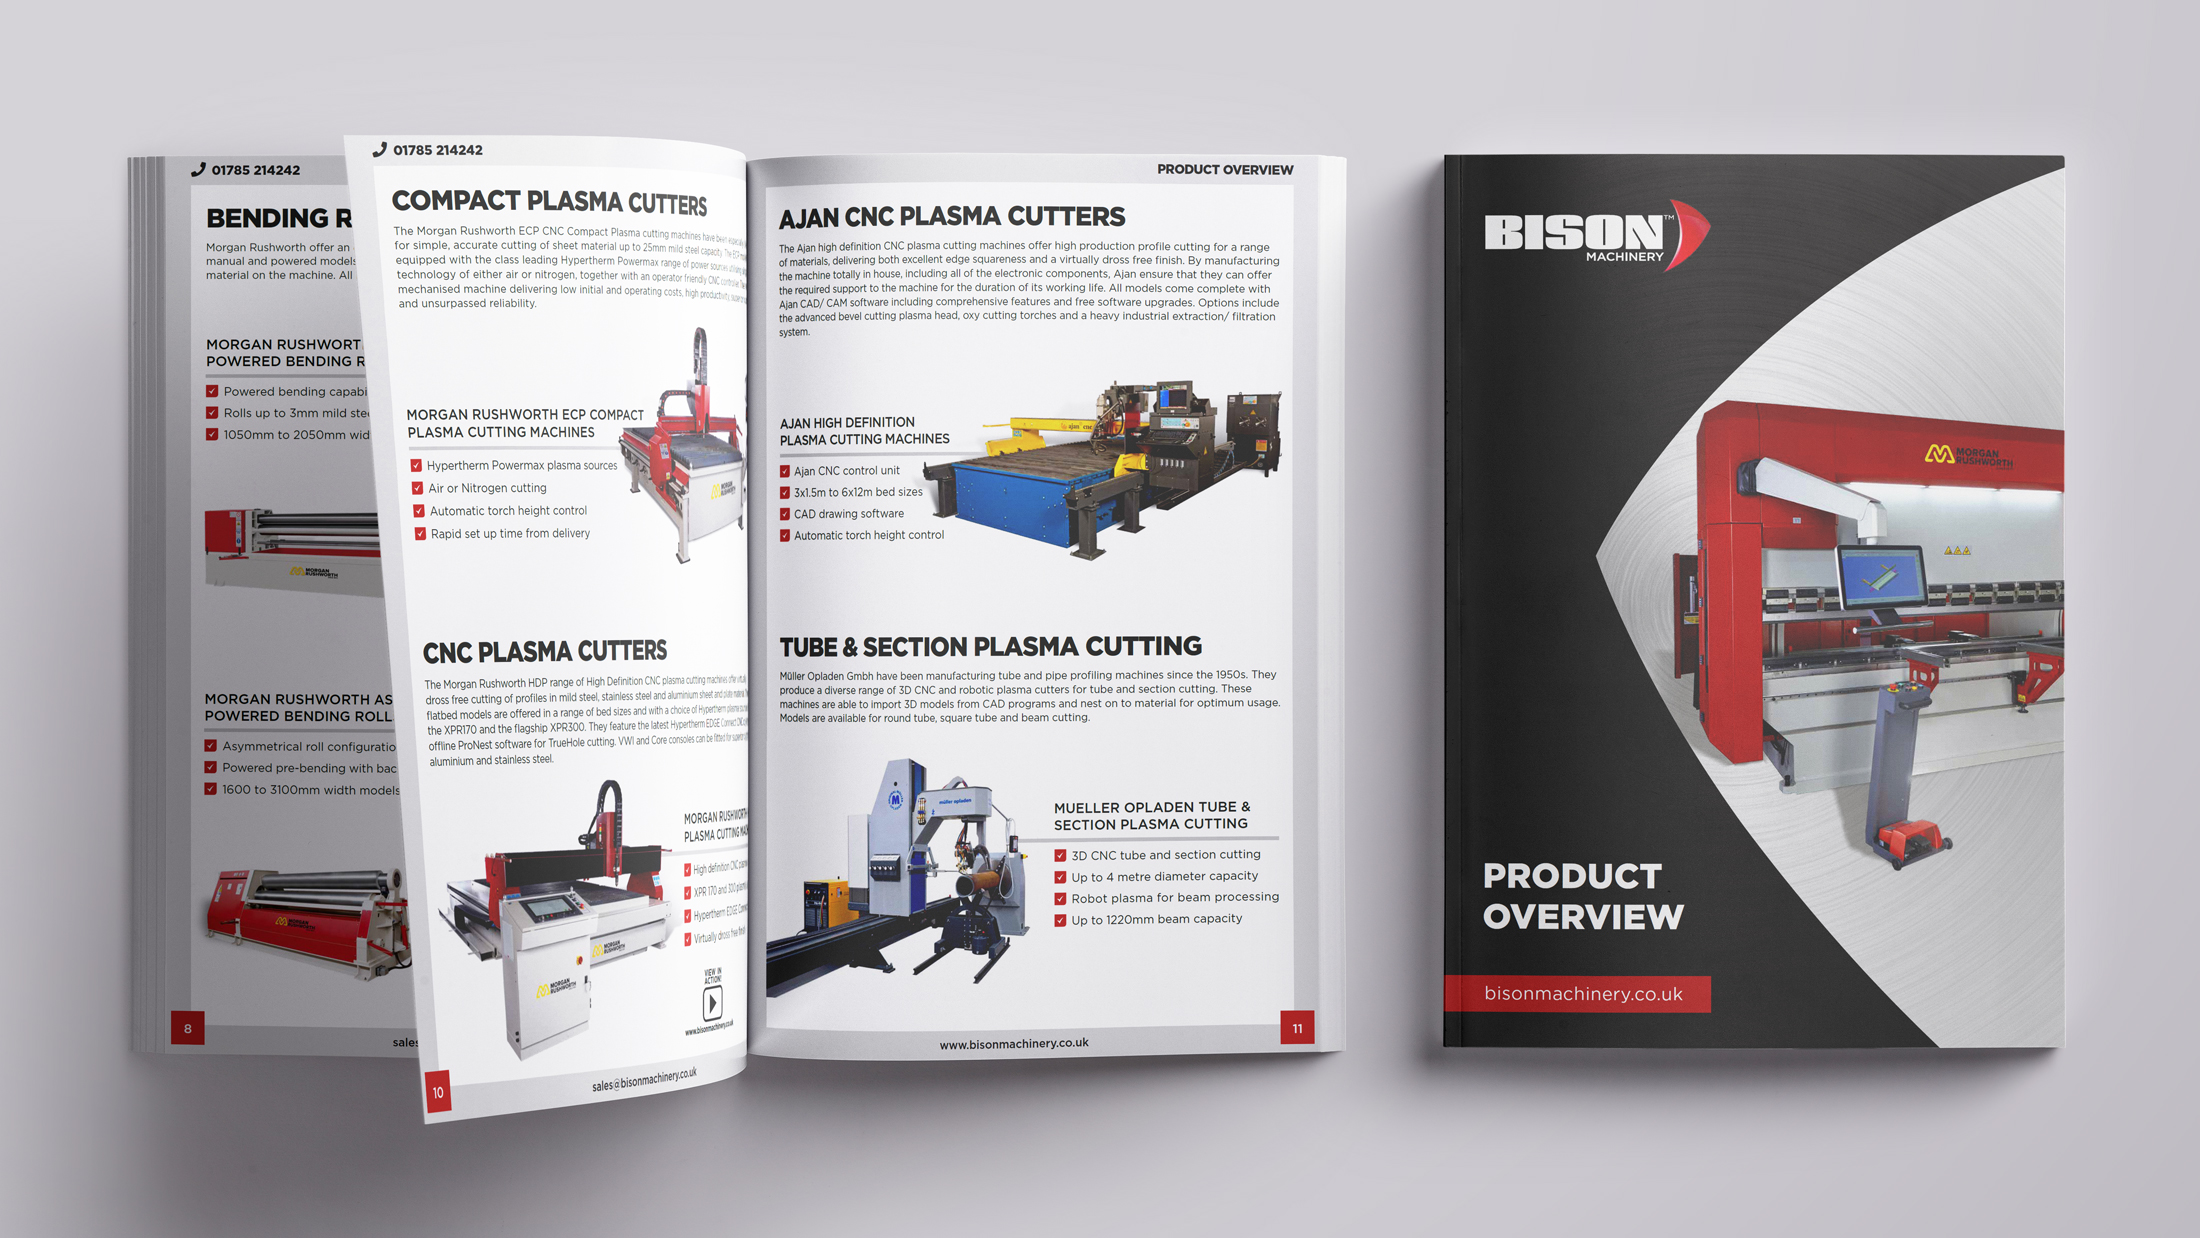 Our latest Product Overview now available